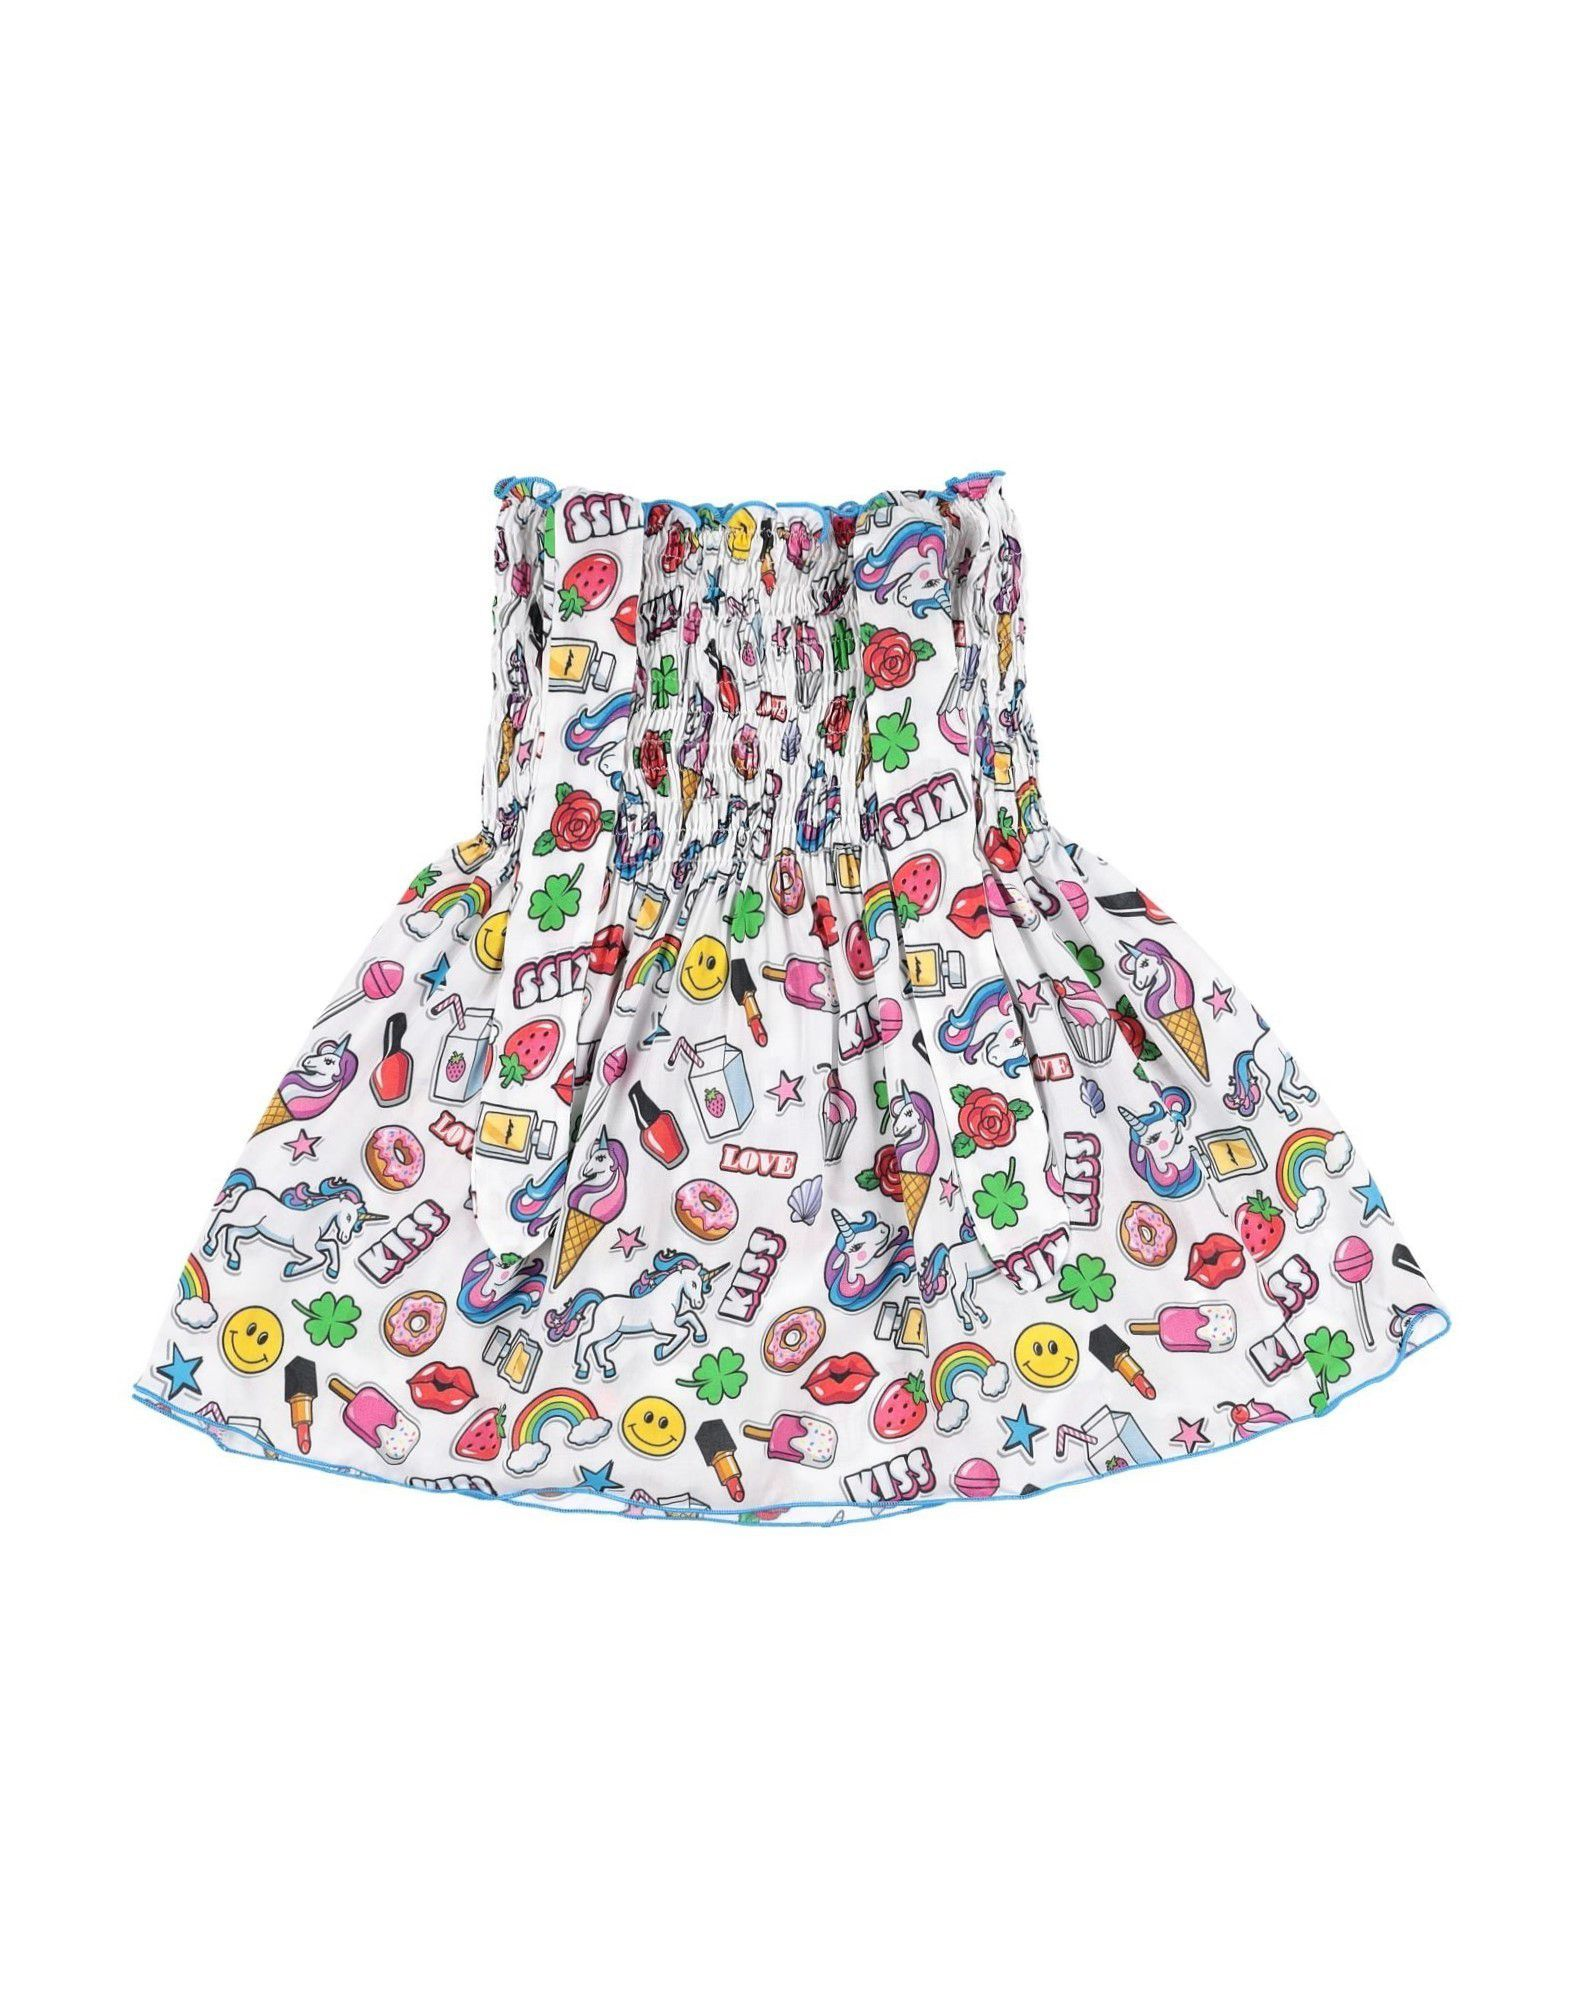 MC2 SAINT BARTH Dresses. plain weave, bow-detailed, frills, cartoon print, deep neckline, sleeveless, no pockets, no fastening, unlined, wash at 40degree c, dry cleanable, iron at 110degree c max, do not bleach, do not tumble dry. 100% Viscose